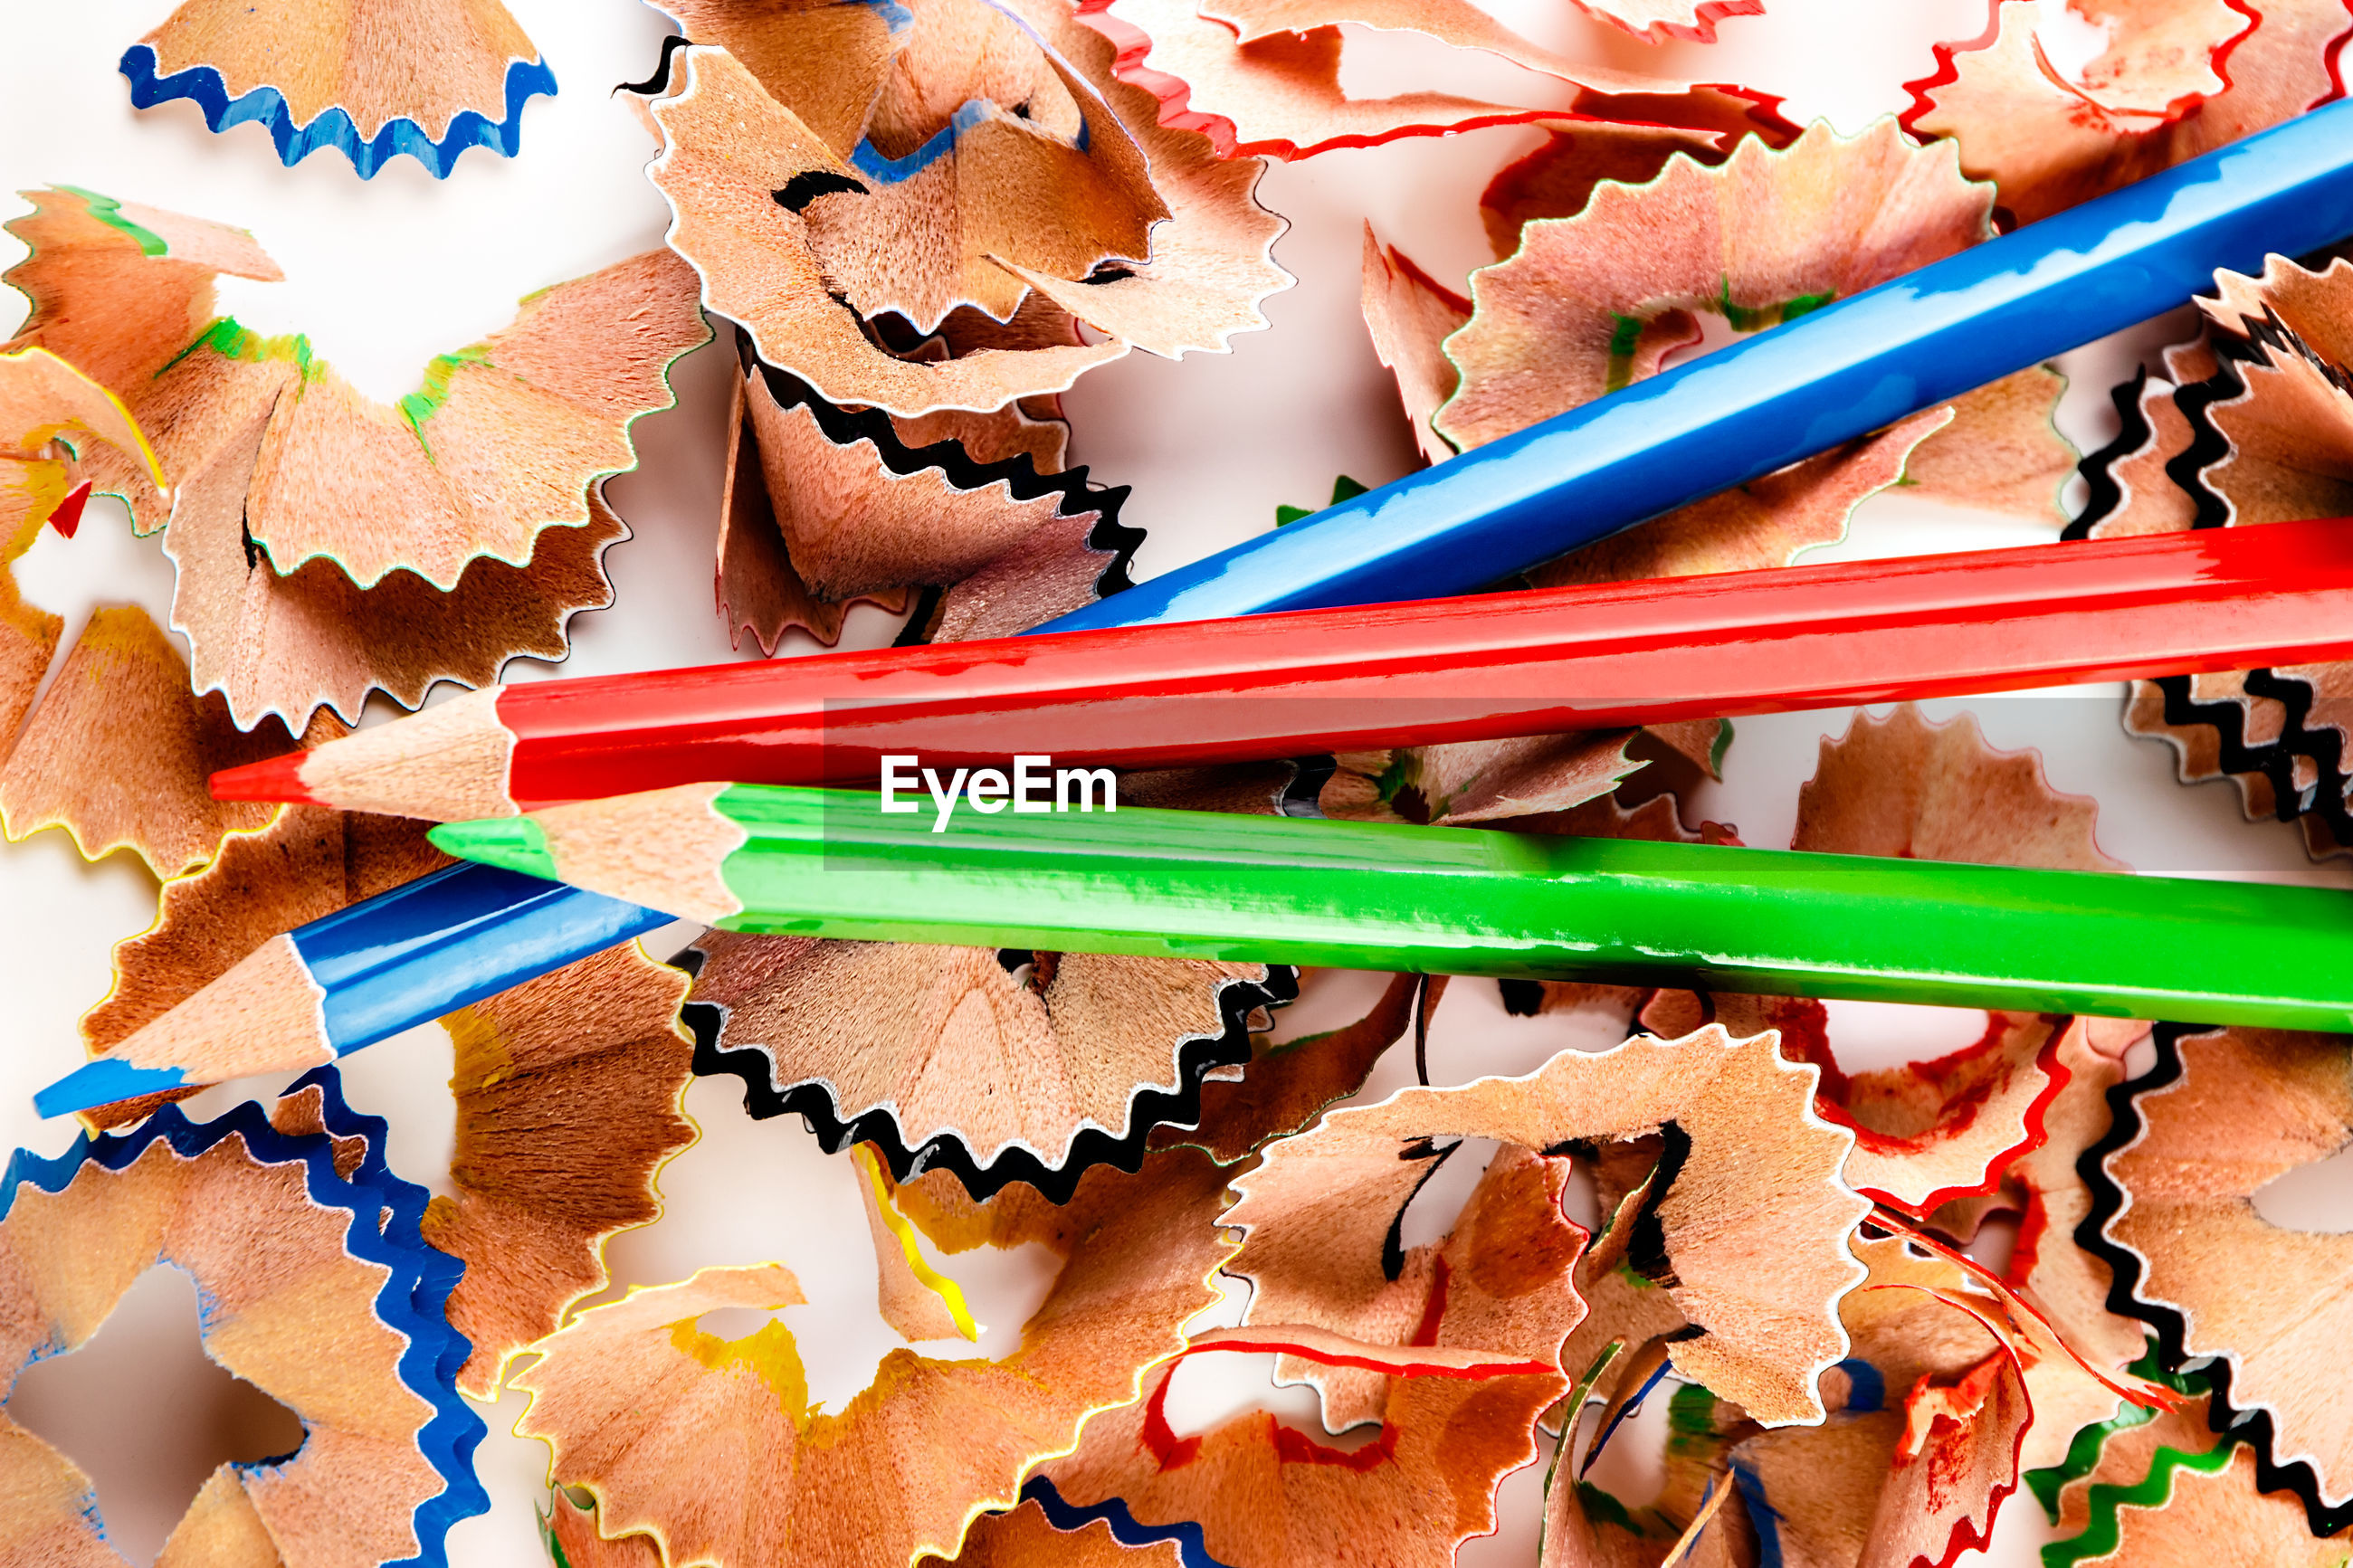 High angle view of multi colored pencils and shavings against white background